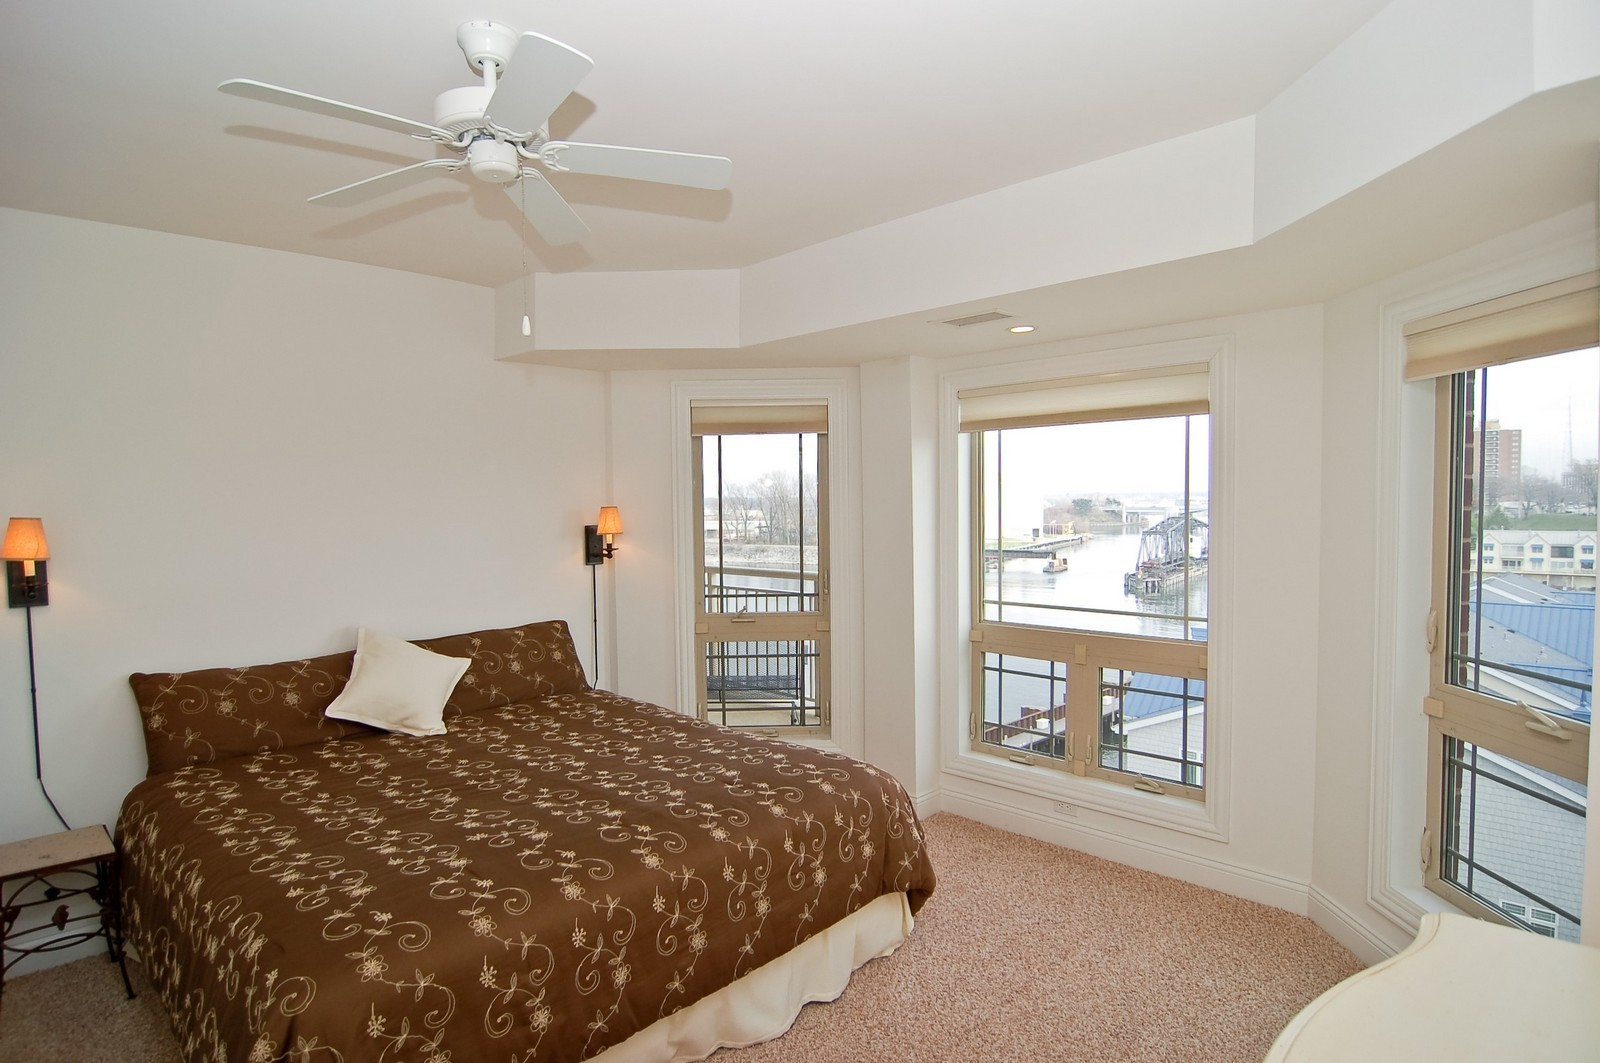 Real Estate Photography - 200- 7B Lake Street, St Joseph, MI, 49085 - 2nd Bedroom